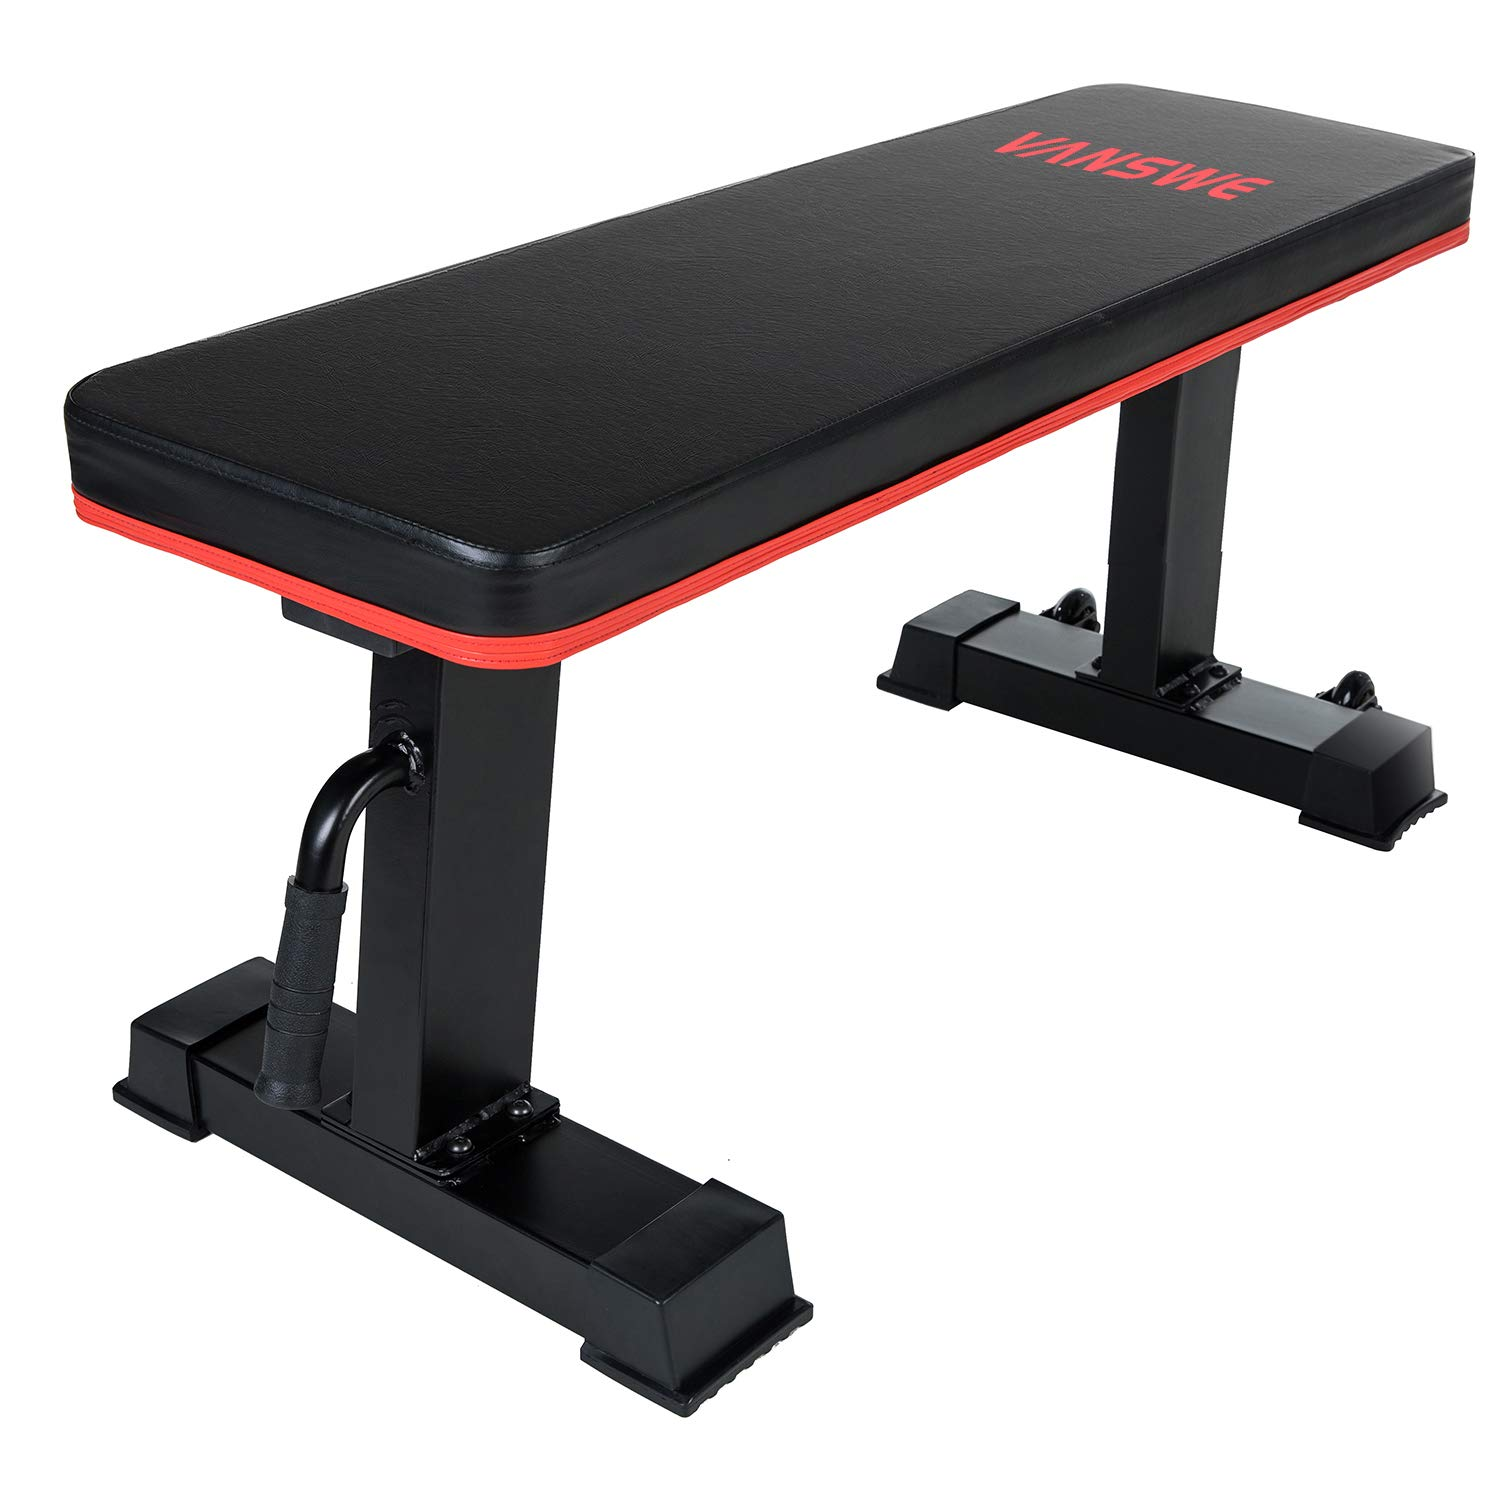 Vanswe Flat Bench 1000lbs Workout Utility Exercise Flat Weight Bench Press for Home Gym Fitness Weight Lifting Training by Vanswe